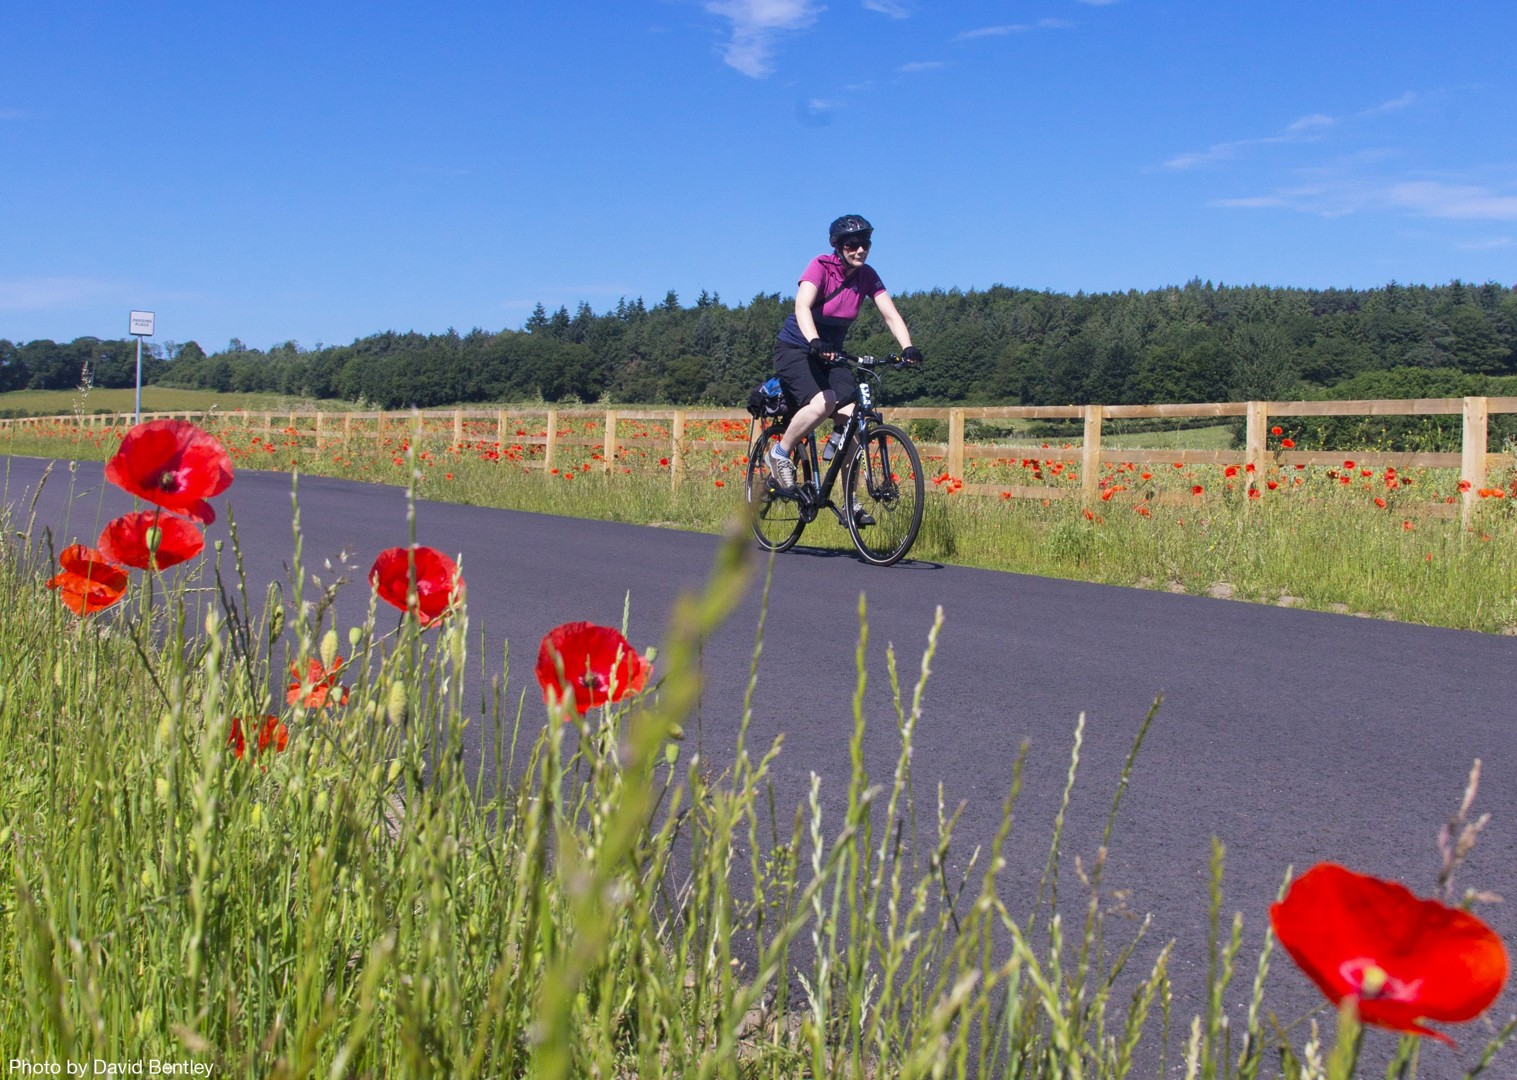 UK-Hadrians-Cycleway-Supported-Leisure-Cycling-Holiday-group-cycling.jpg - UK - Hadrian's Cycleway - Supported Leisure Cycling Holiday - Leisure Cycling